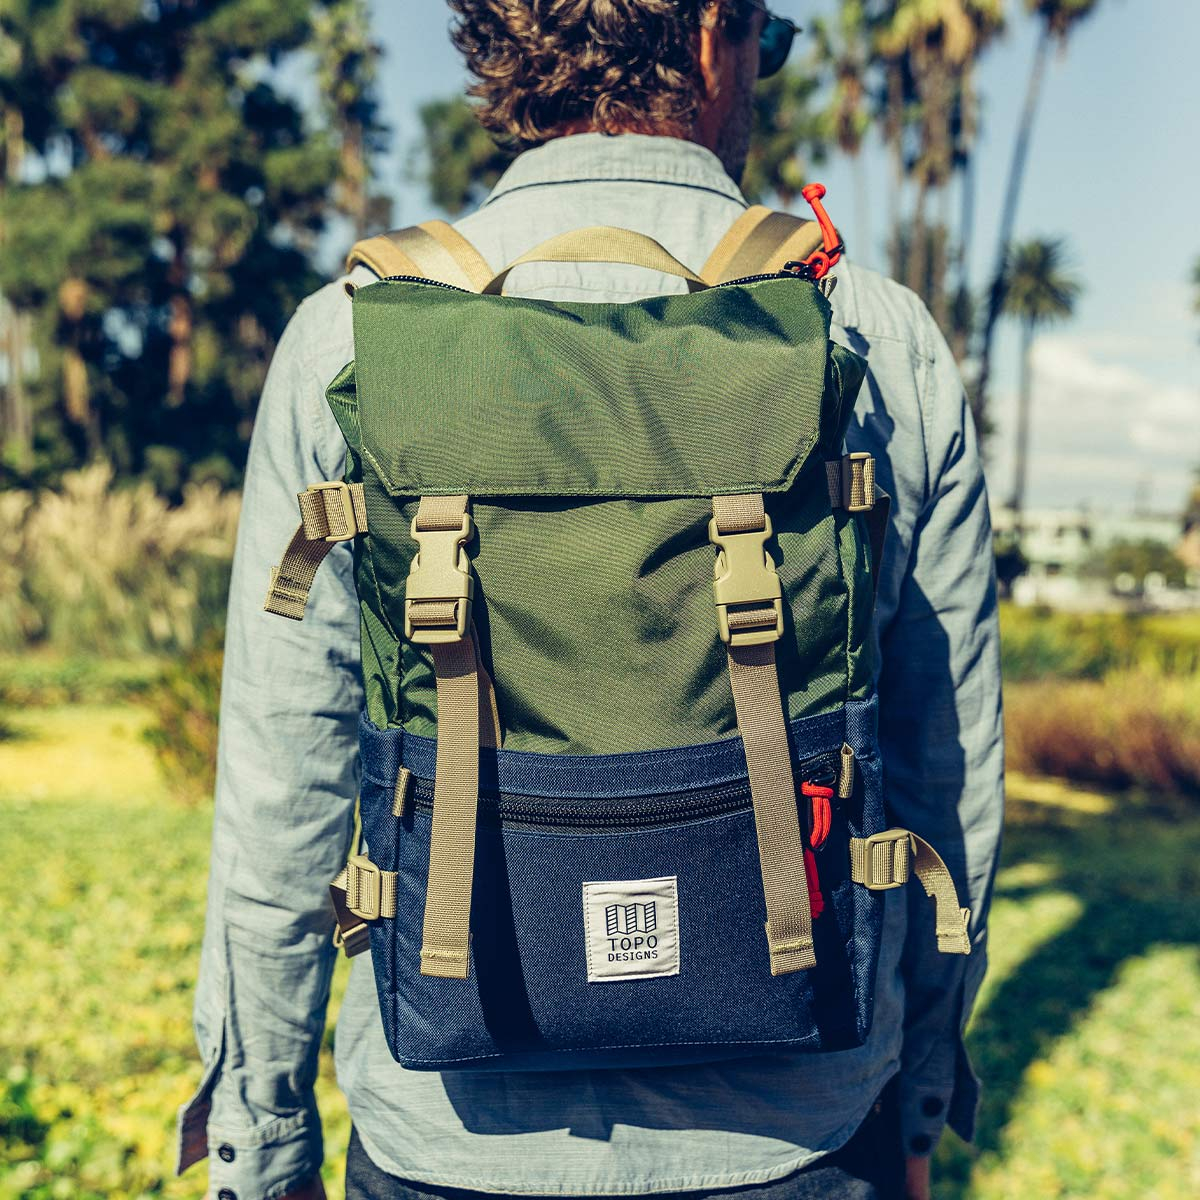 Topo Designs Rover Pack Classic Olive/Navyd, timeless backpack with great functionalities